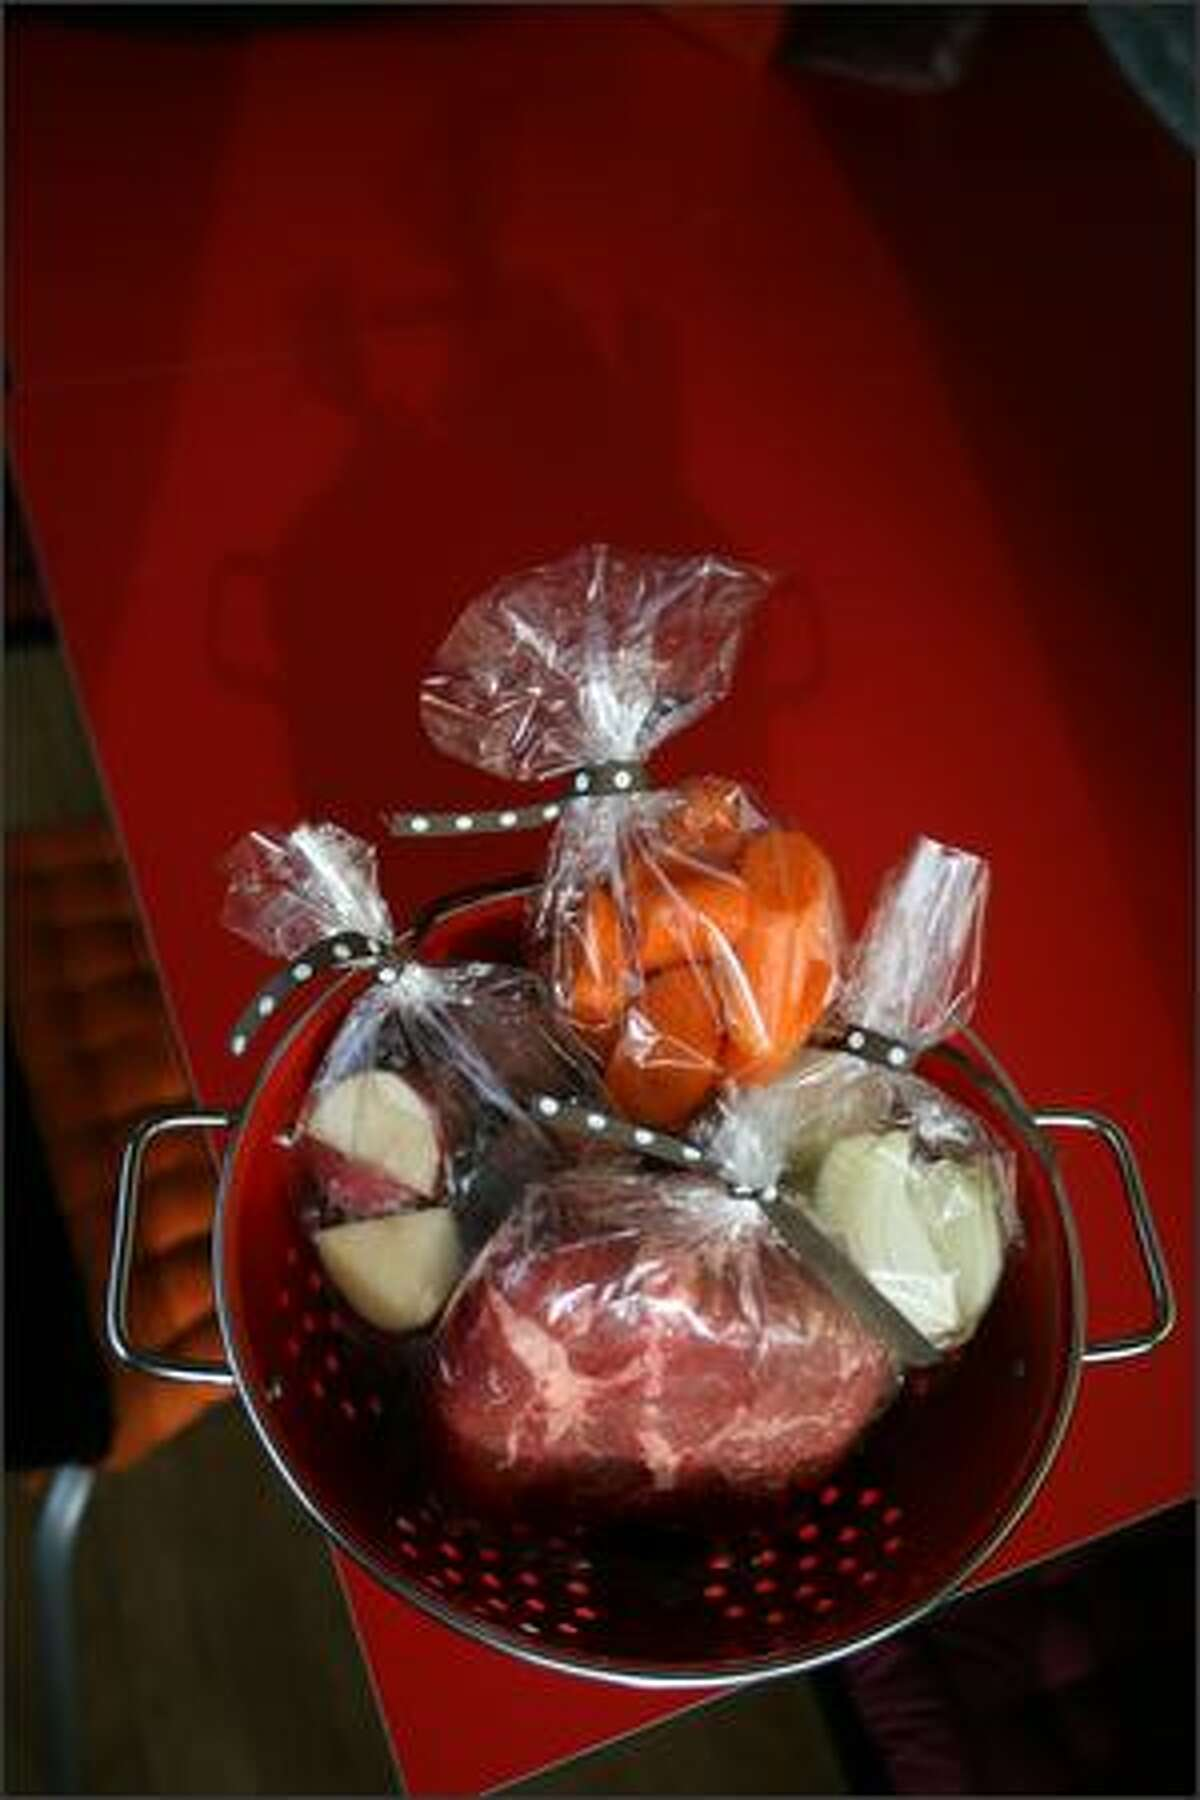 A welcome gift can be the ingredients for a slow cooker dish, such as these vegetables and meat for a pot roast.